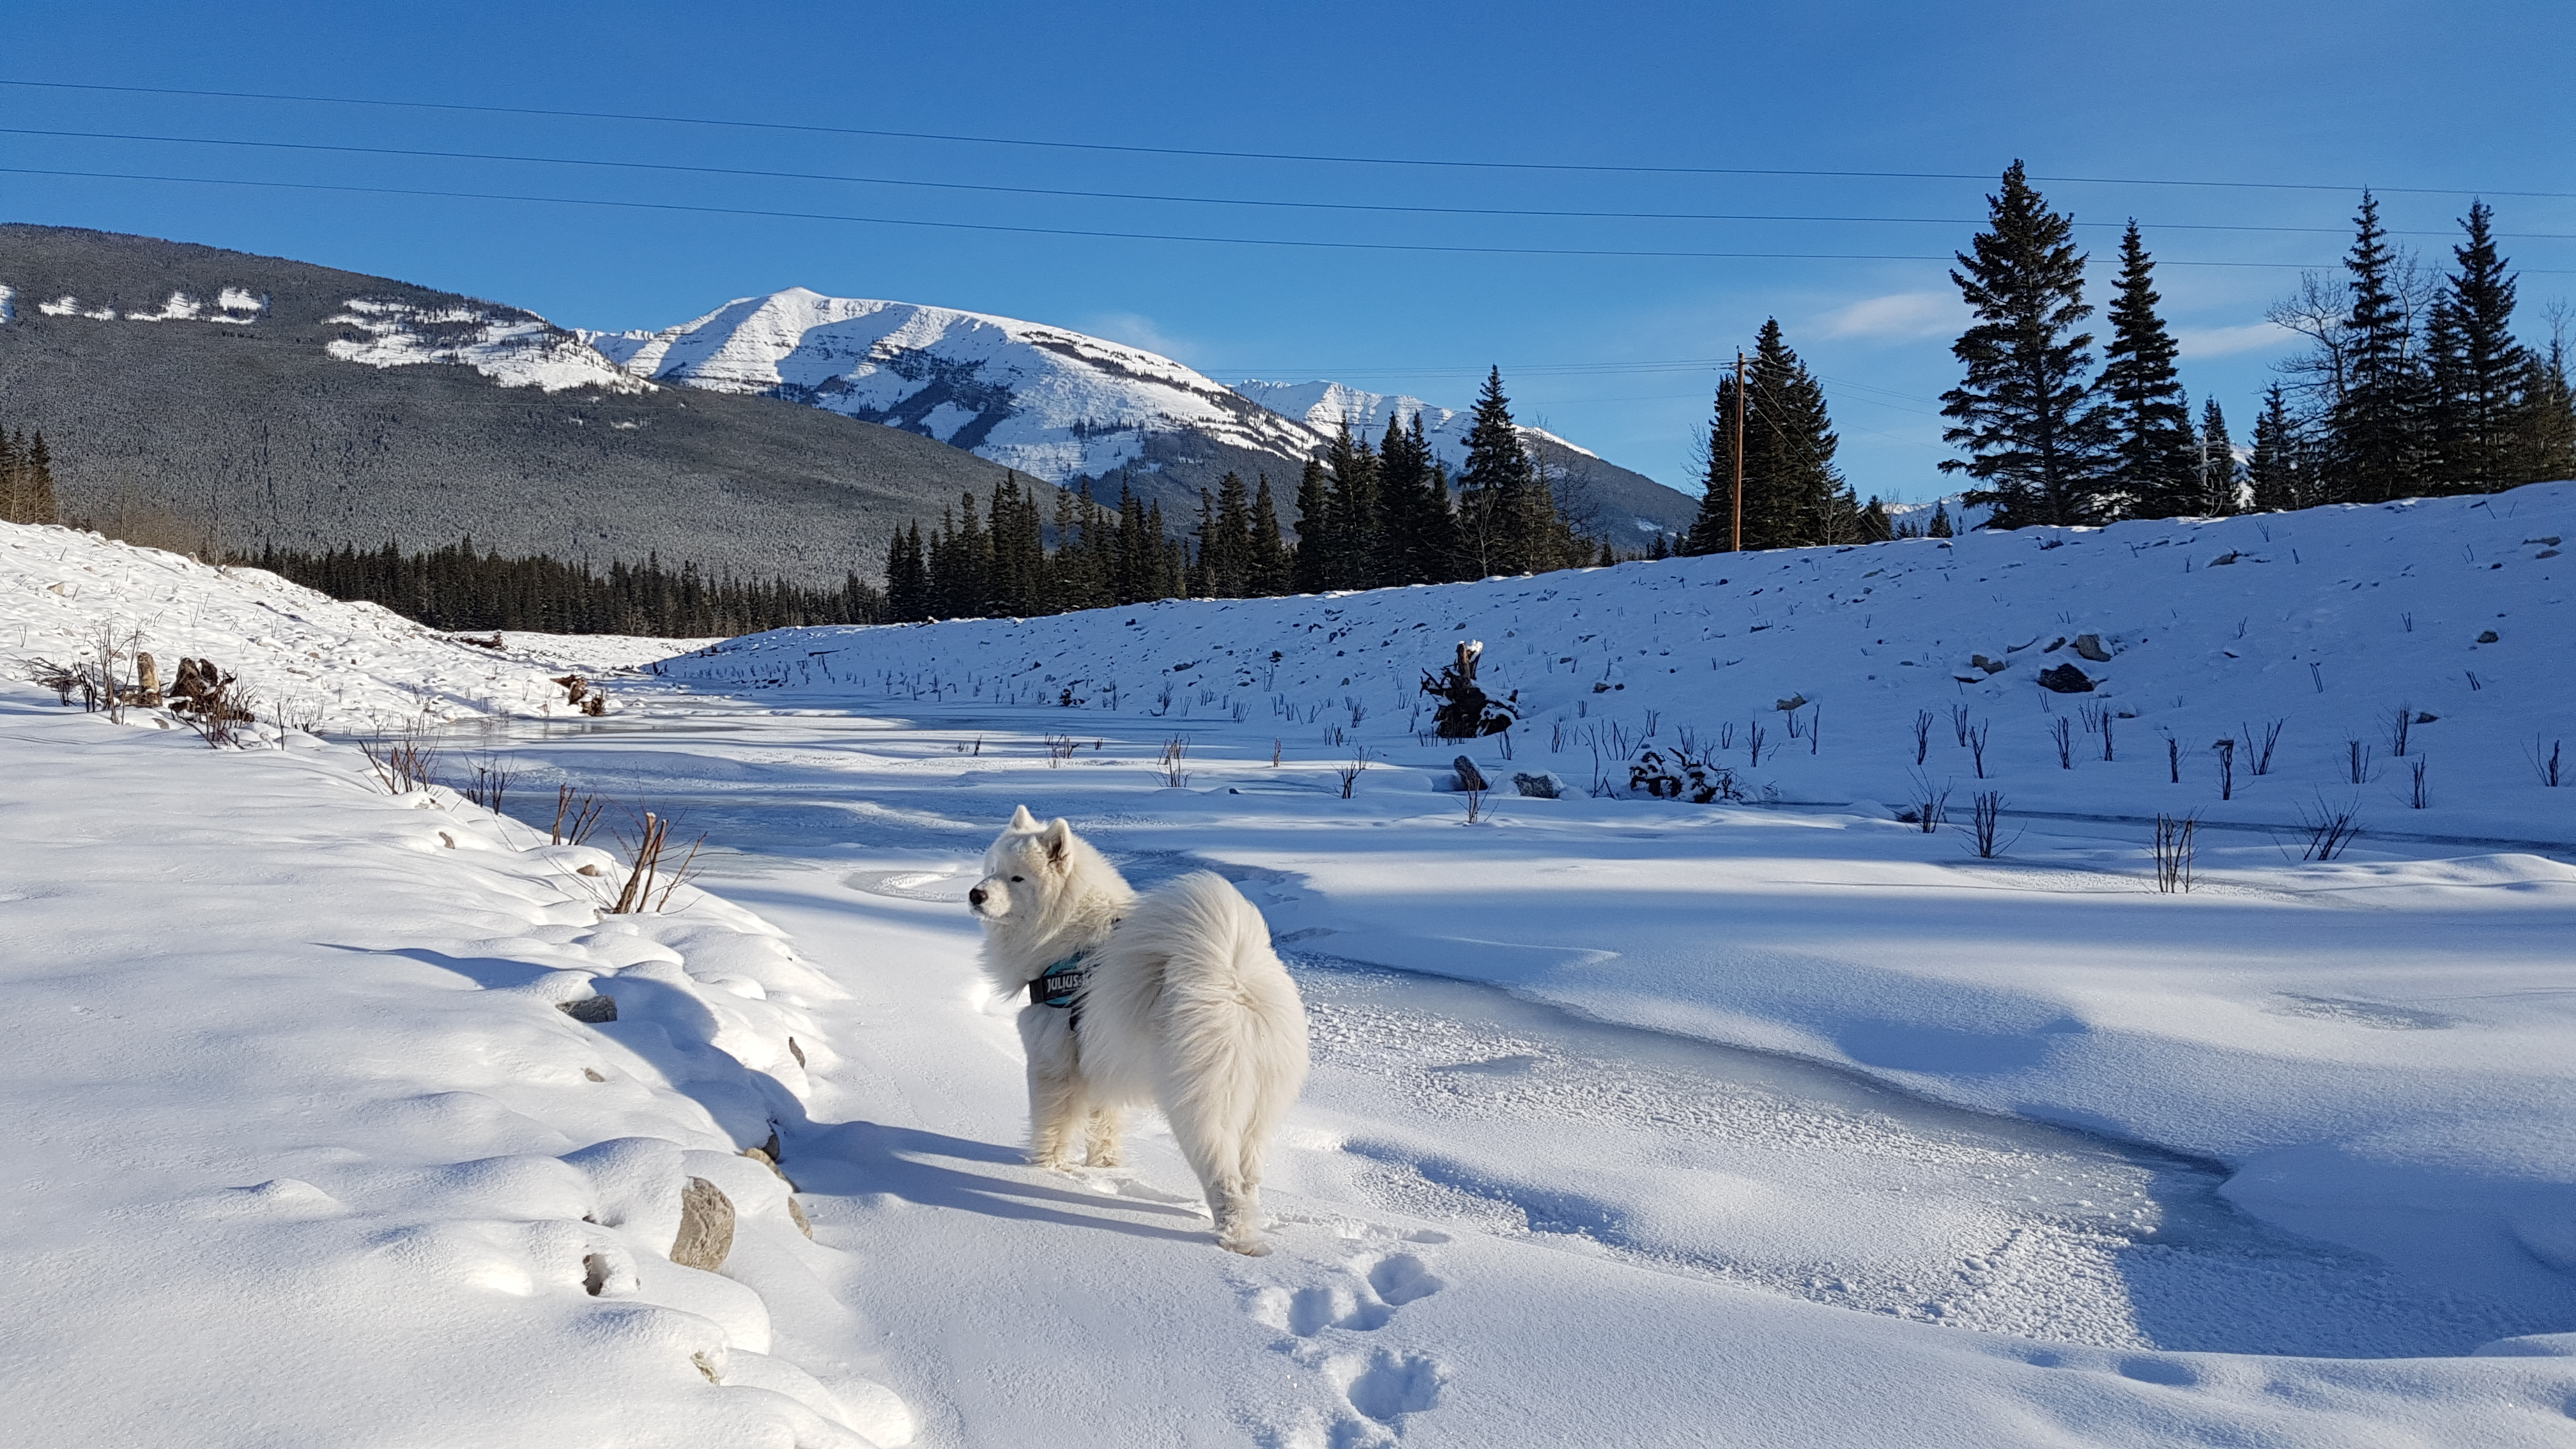 About Swedes' Hut Samoyeds